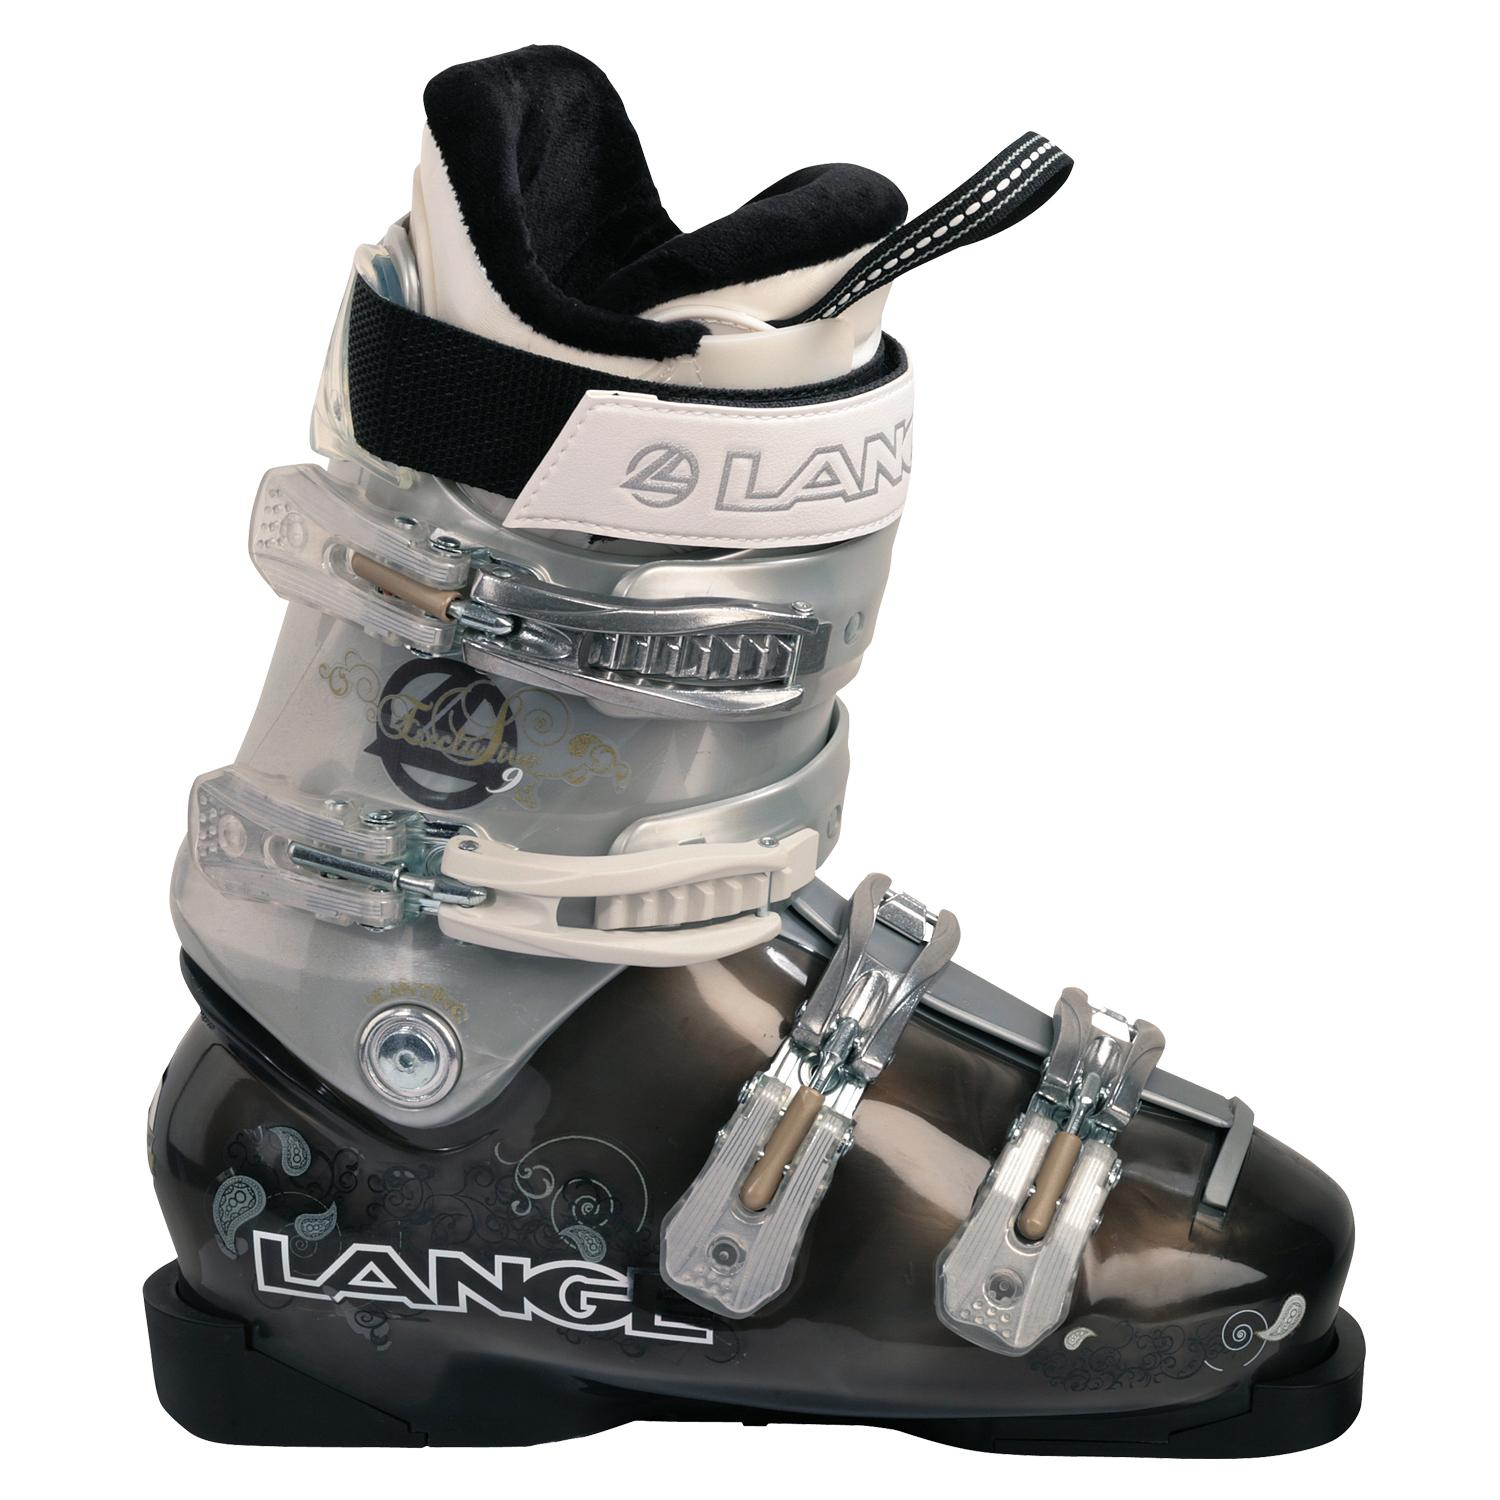 Lange Exclusive 9 Ski Boots - Women's 2010 | evo outlet